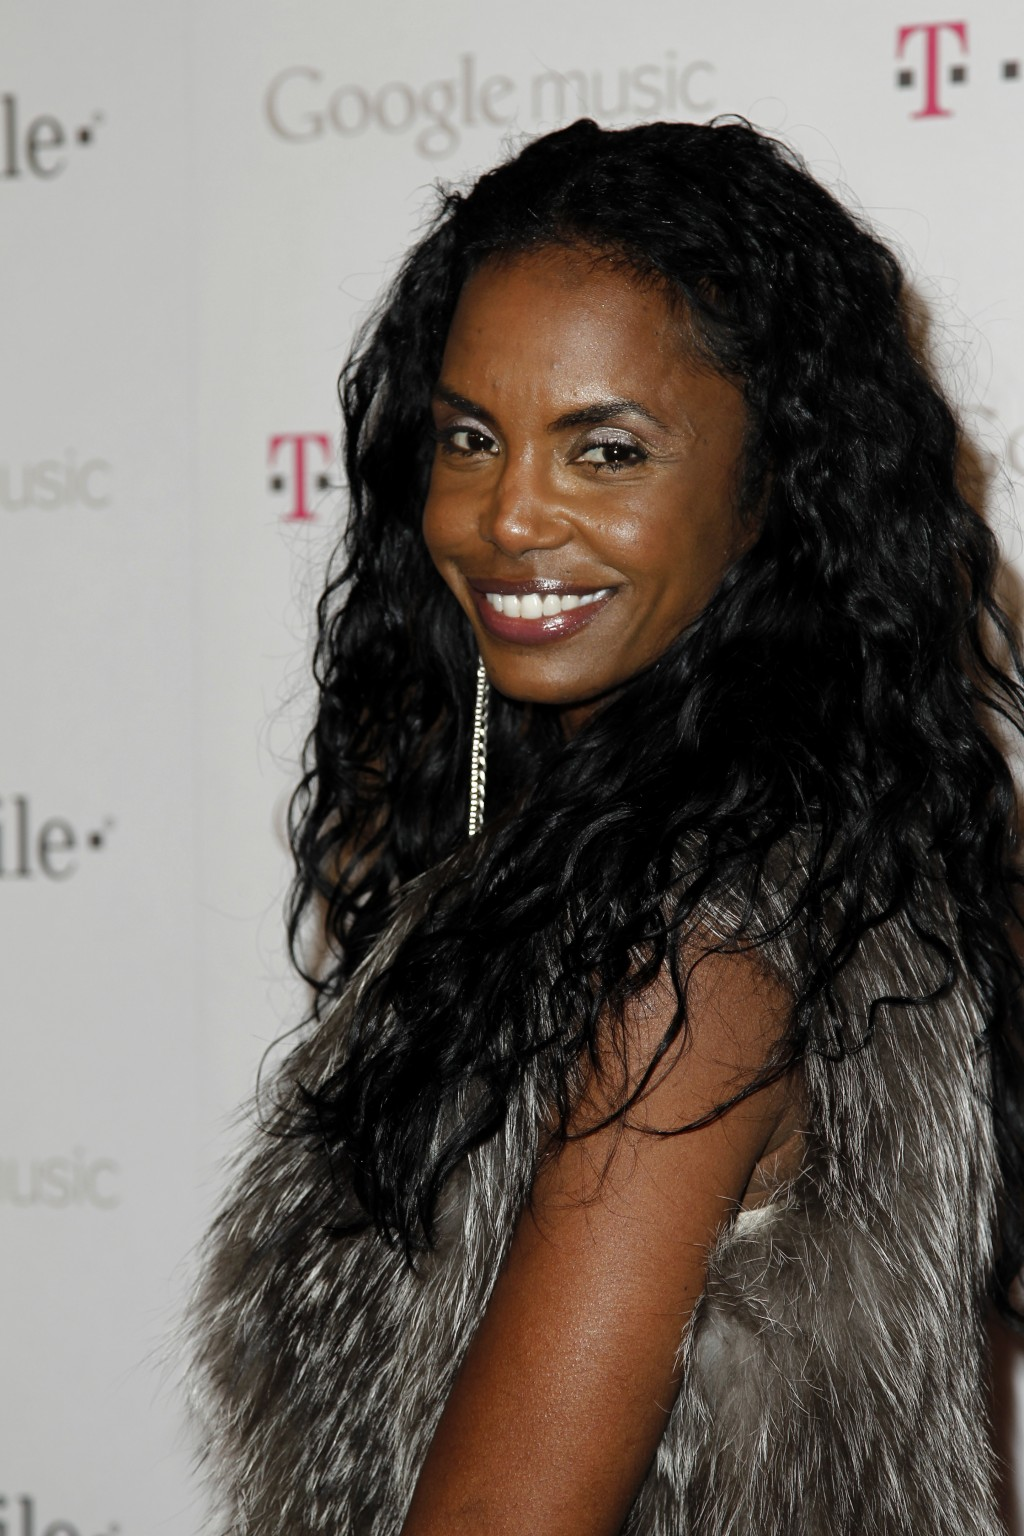 File-This Nov. 16, 2011, file photo shows Kim Porter arriving at the Google and T-Mobile party celebrating the launch of Google Music, in Los Angeles....